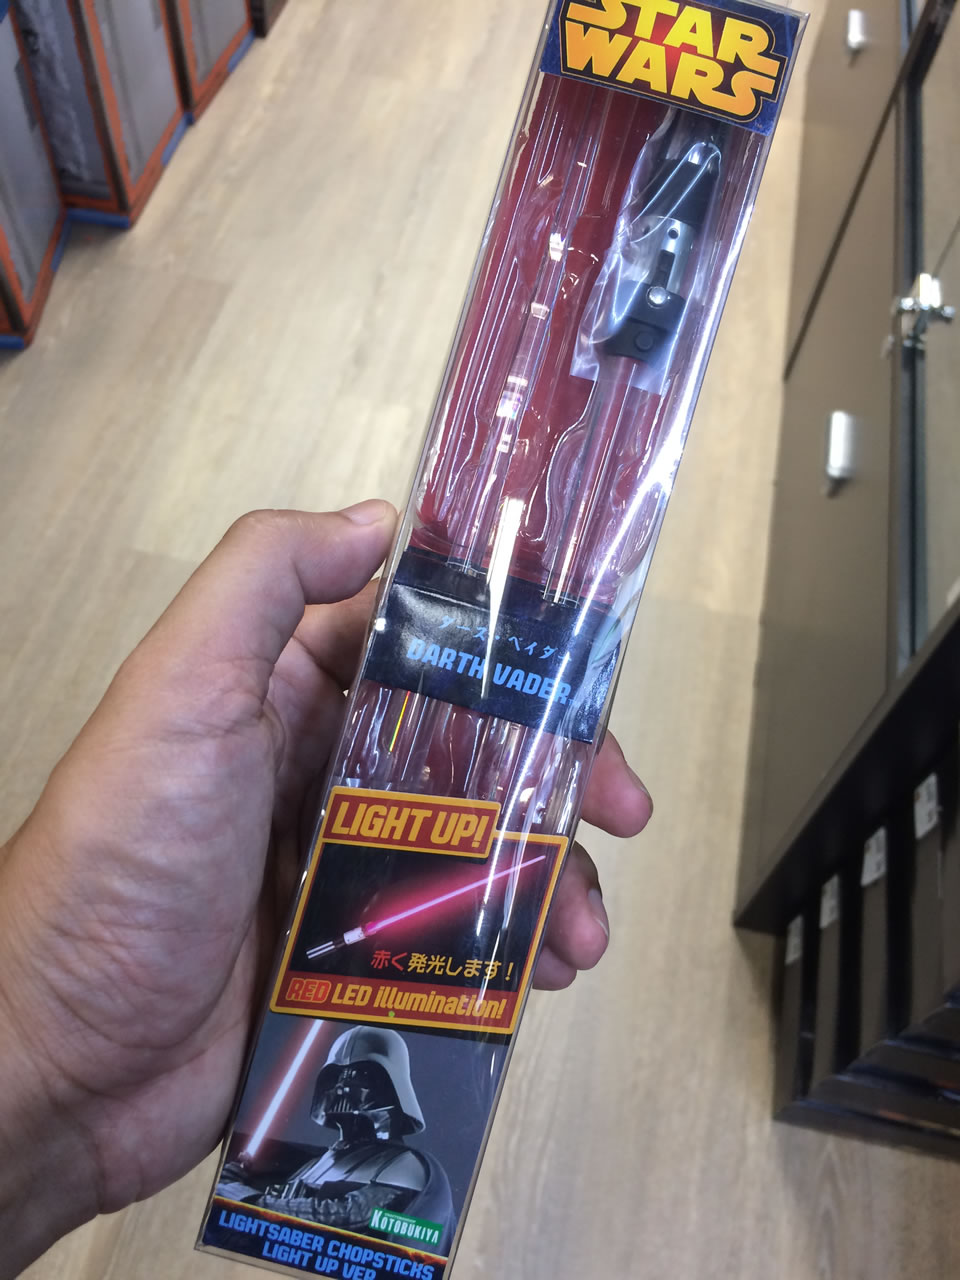 61 thinkgeek store - star wars chopsticks